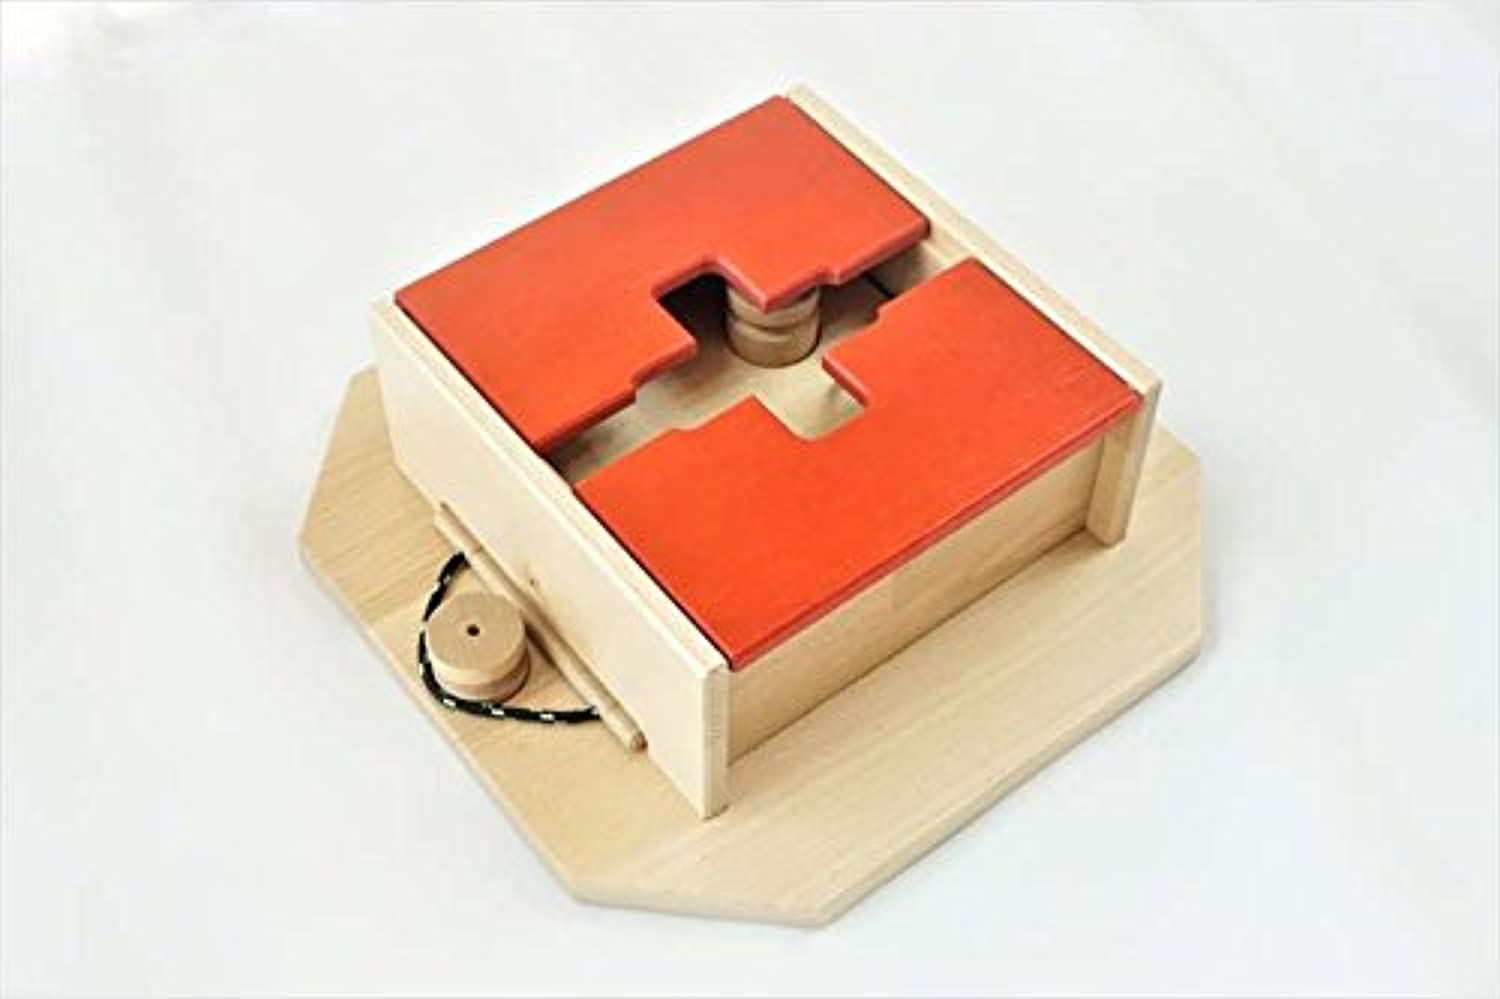 My Intelligent Dogs interactive dog toy made of wood, M